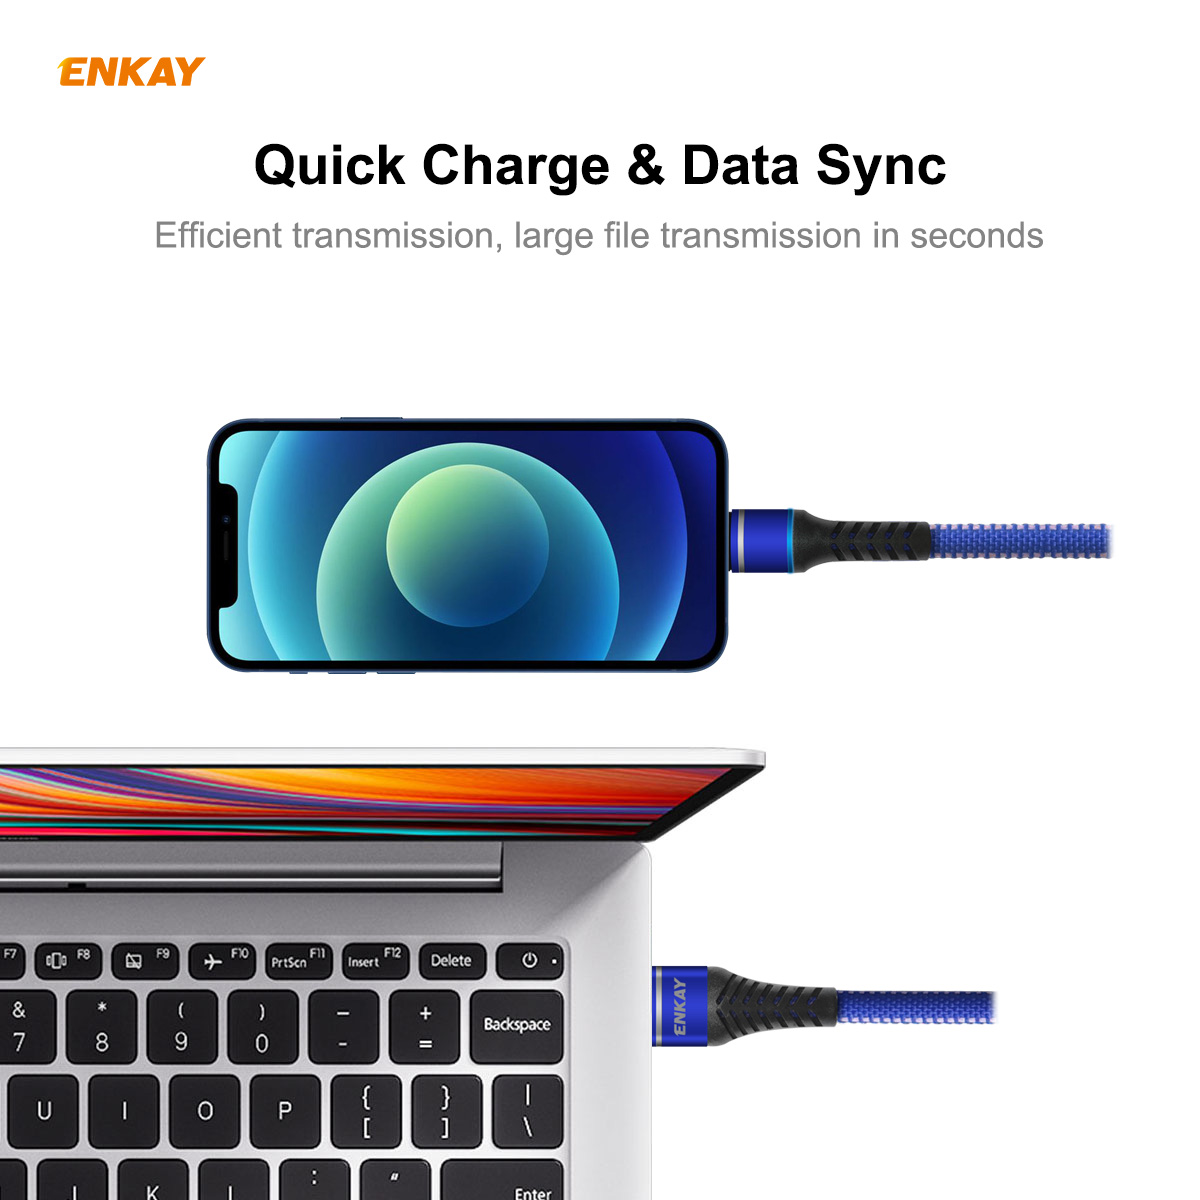 ENKAY ENK-CB207 USB 3.0 to 8-pin Data Cable 1M - Blue